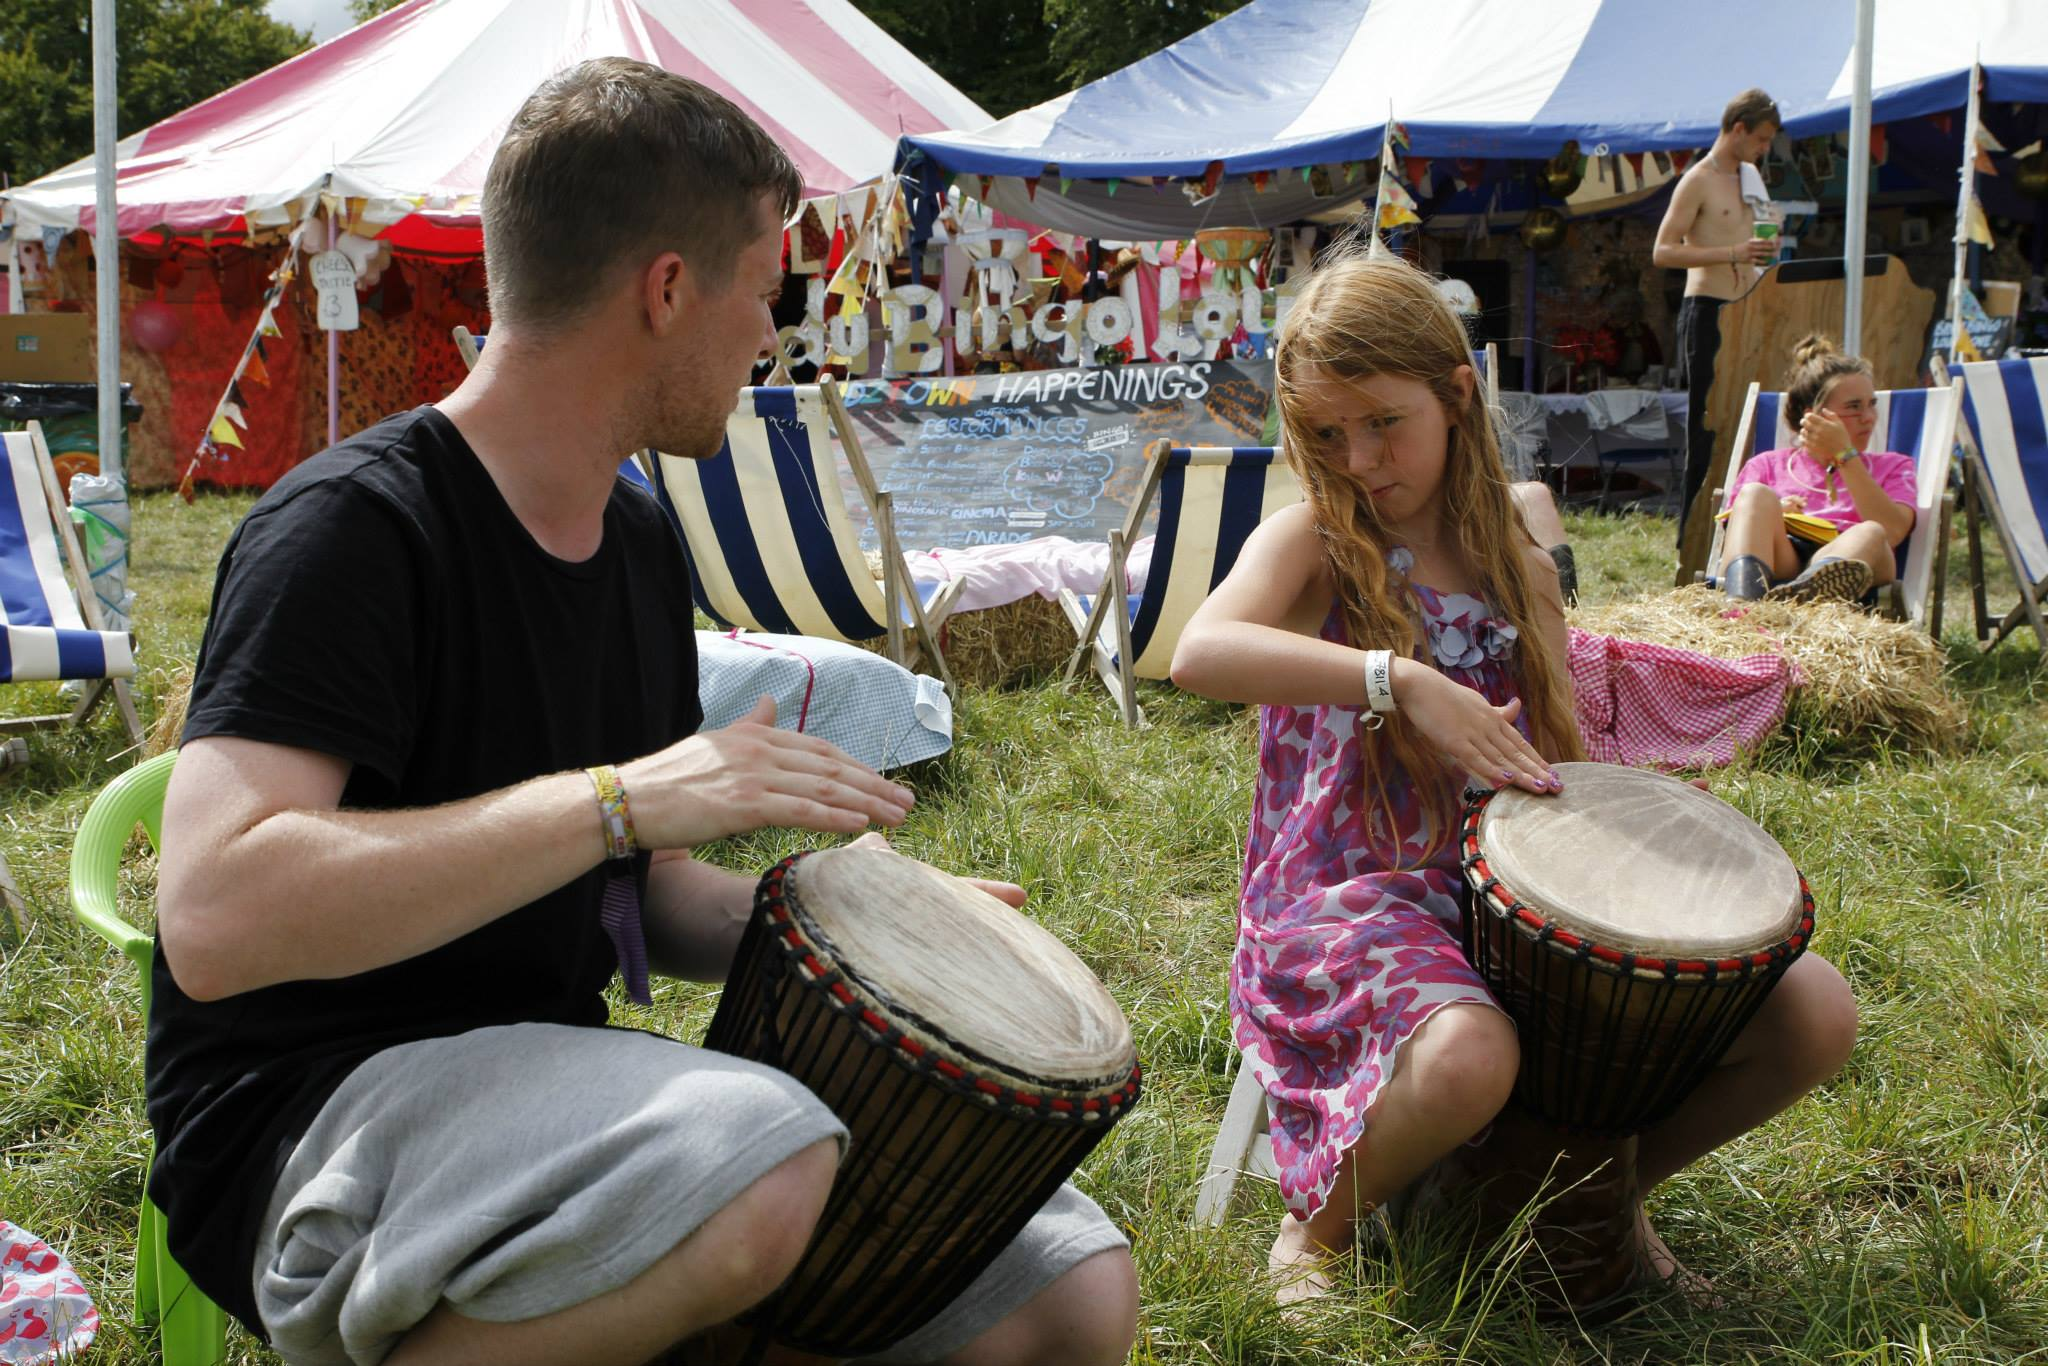 Sam in Djembe workshop in Kidztown, Boomtown